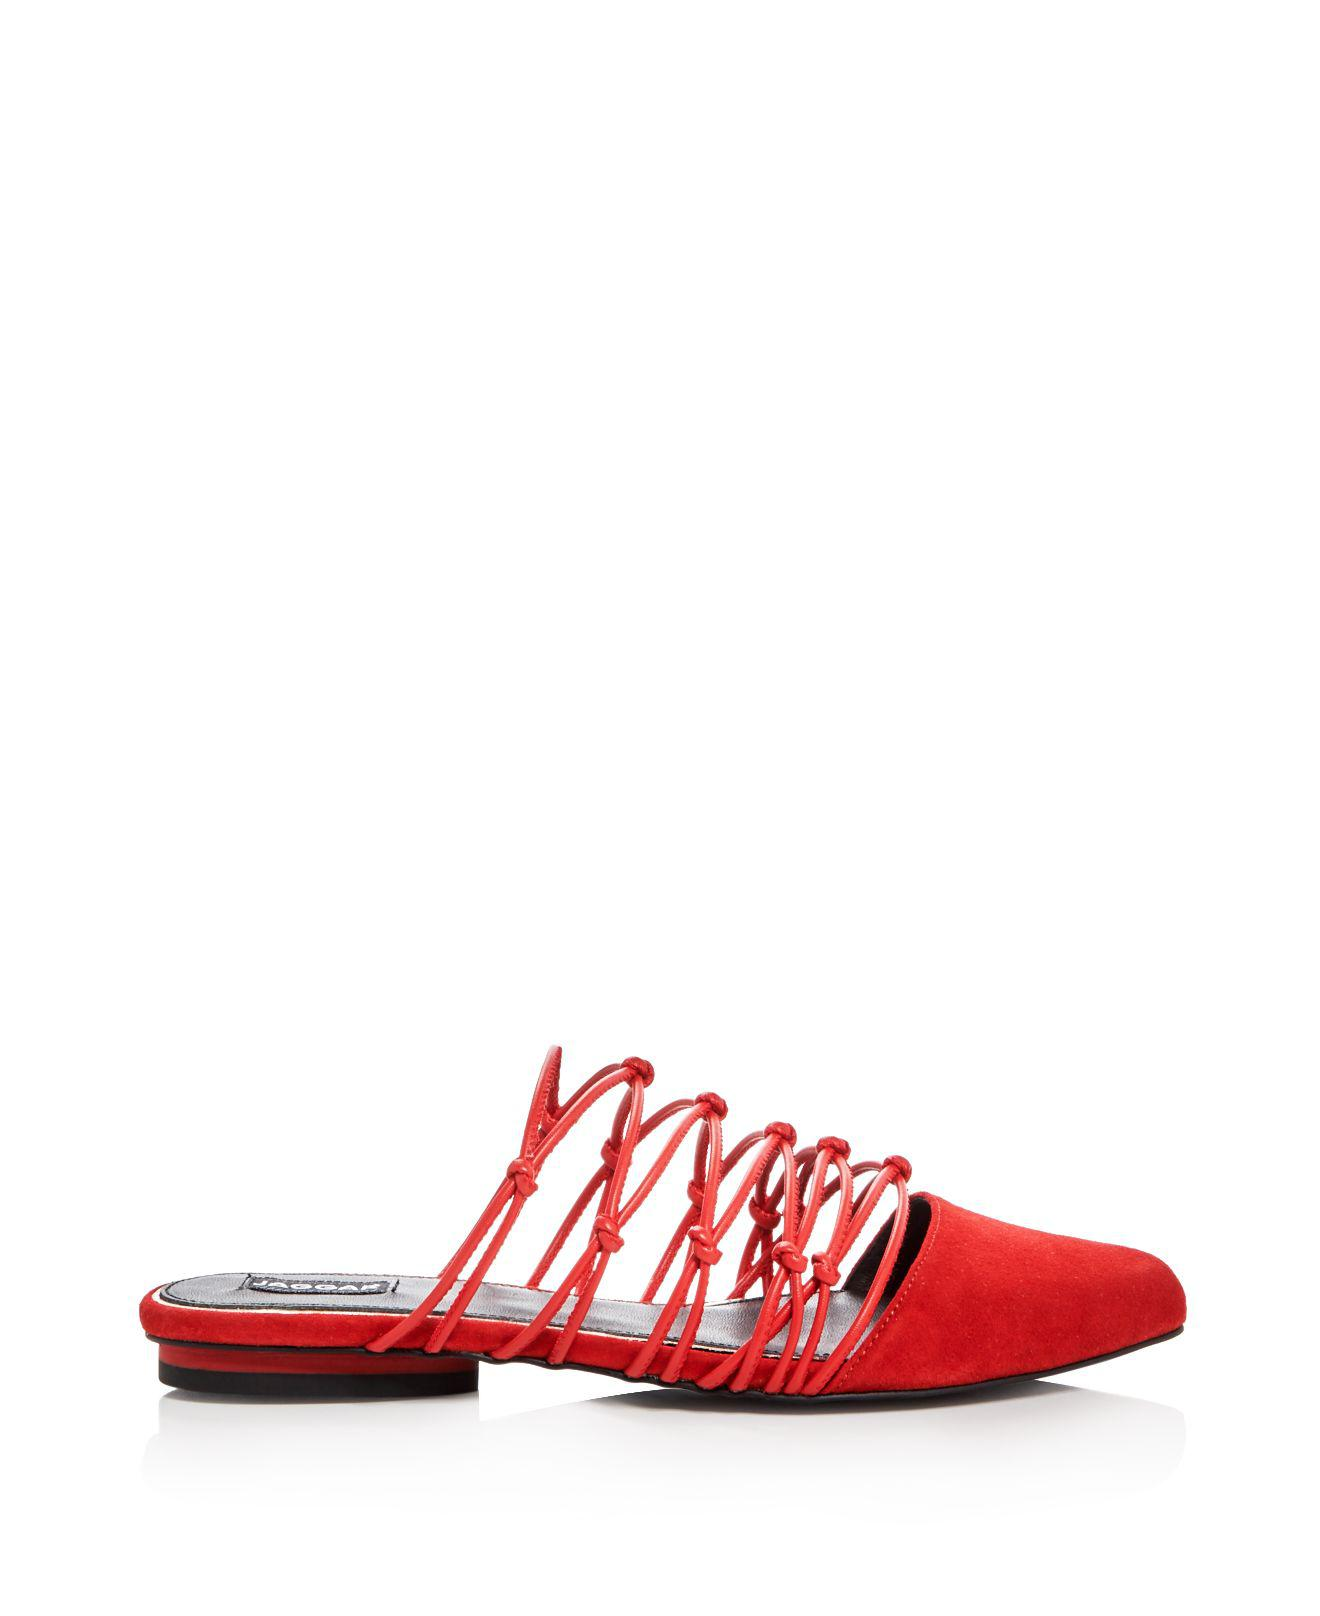 JAGGAR Series Strappy Knotted Mules Shipping Discount Authentic Looking For Cheap Price 2018 Cheap Price Genuine WtyBEDpPLc